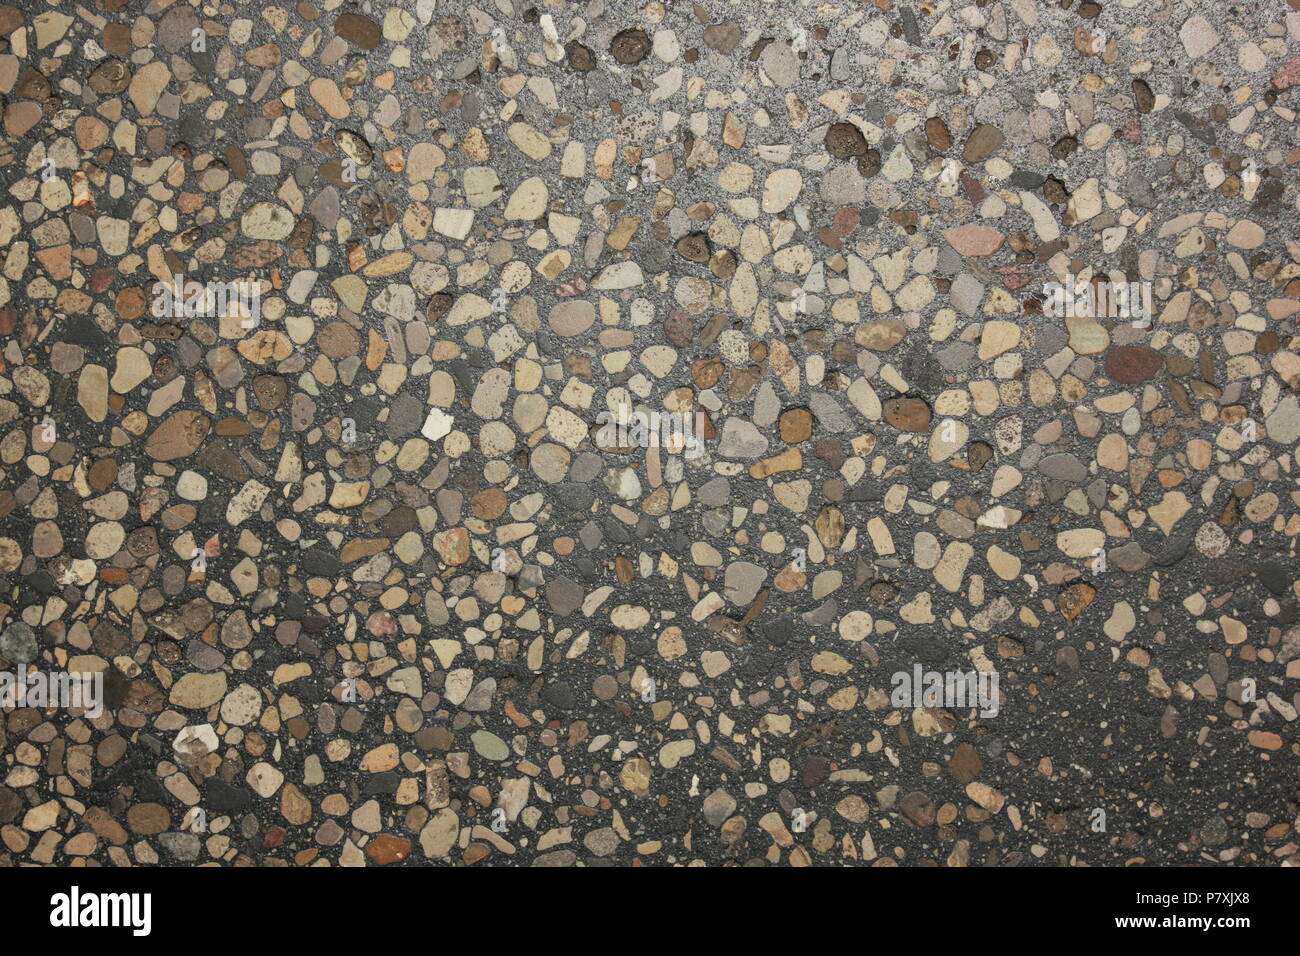 Extremely worn terrazzo flooring with many patchwork fixes and decades of wear at the CTA Blue Line Train Cumberland Station in Park Ridge, Illinois. - Stock Image